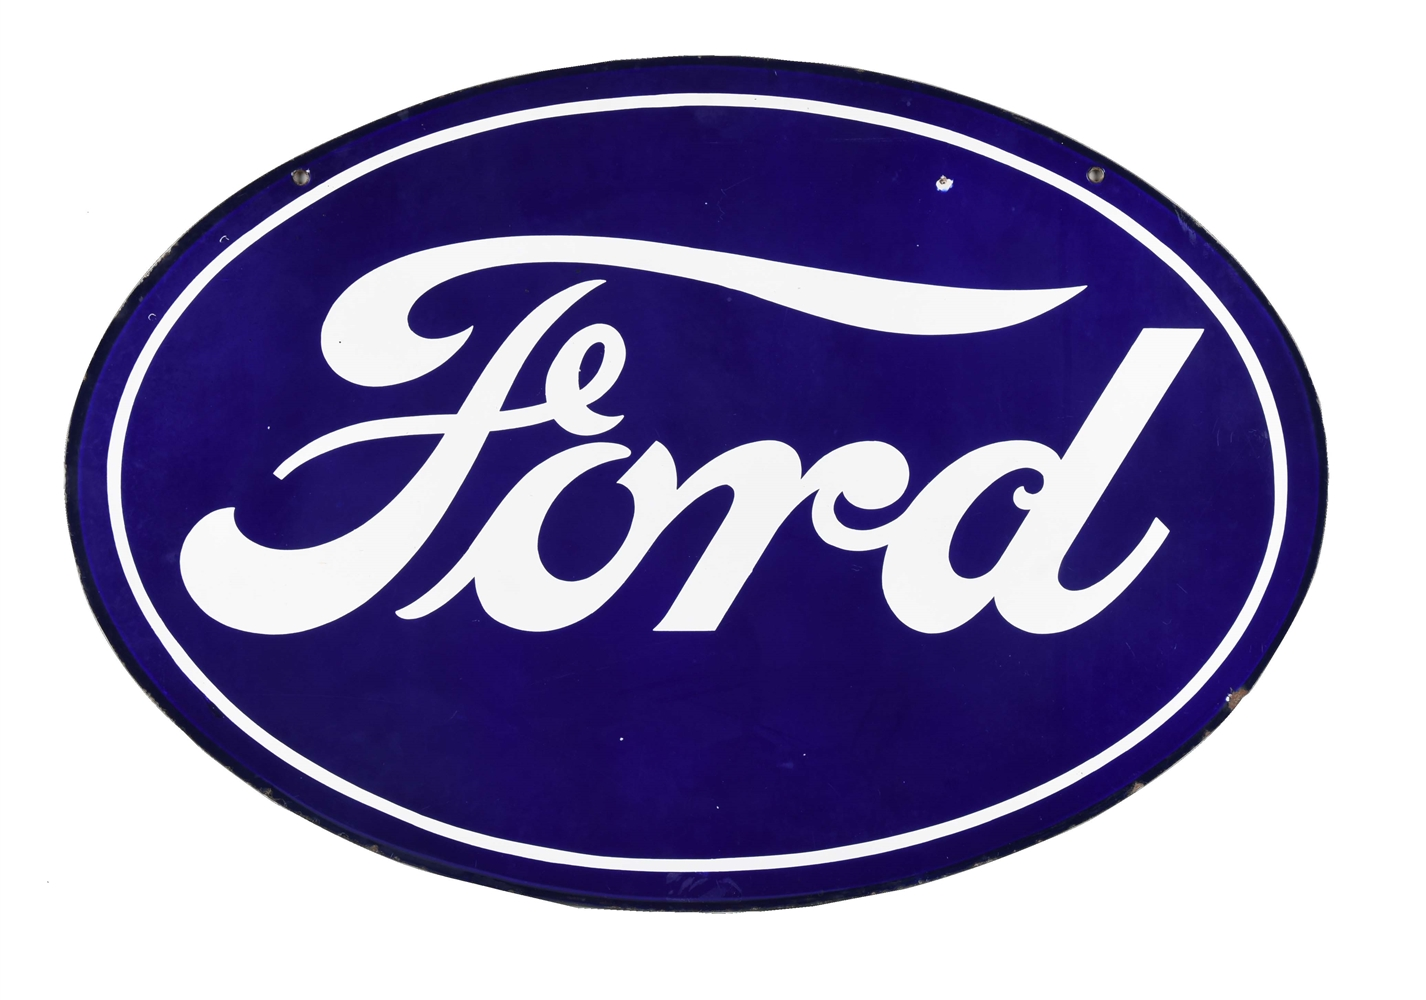 Hard to Find Size Ford in Oval Porcelain Sign.